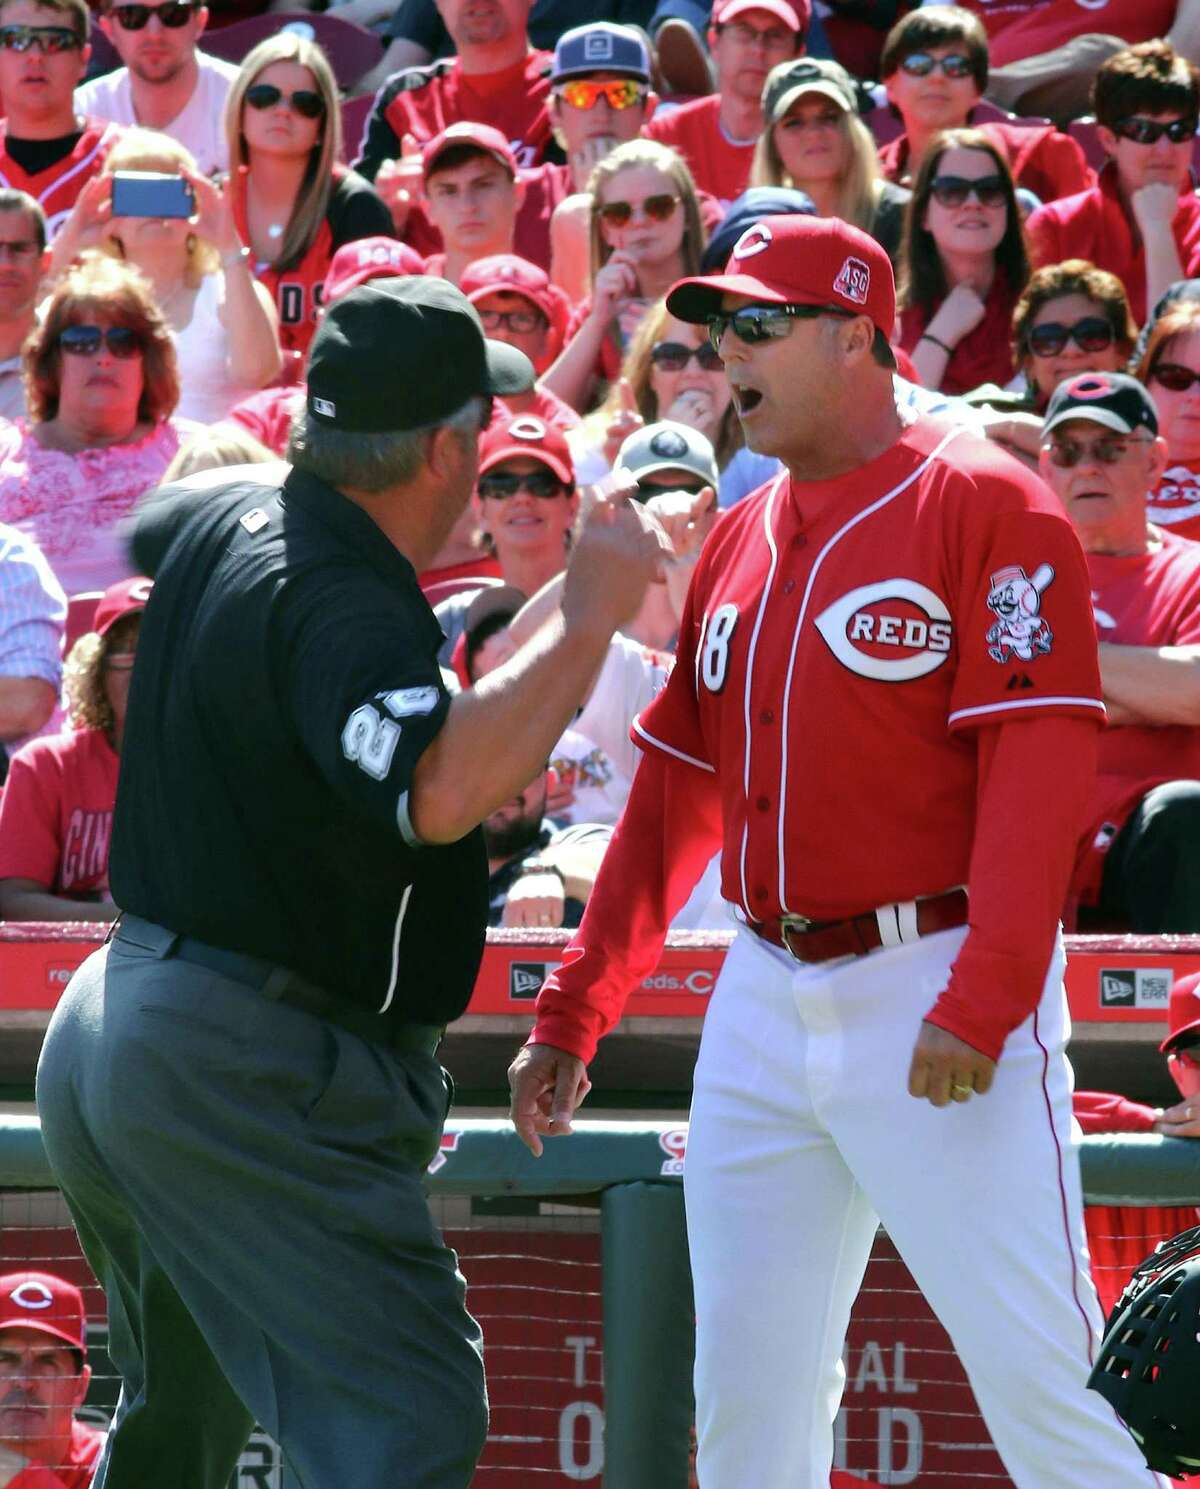 FILE - In this Sunday, April 12, 2015, file photo, Cincinnati Reds manager Bryan Price is ejected by umpire Joe West while arguing a call against the St. Louis Cardinals in the seventh inning of a baseball game, in Cincinnati. Price went on a profanity-filled rant during his pregame meeting with media, Monday, April 20, 2015, taking exception with the way his team was being covered.